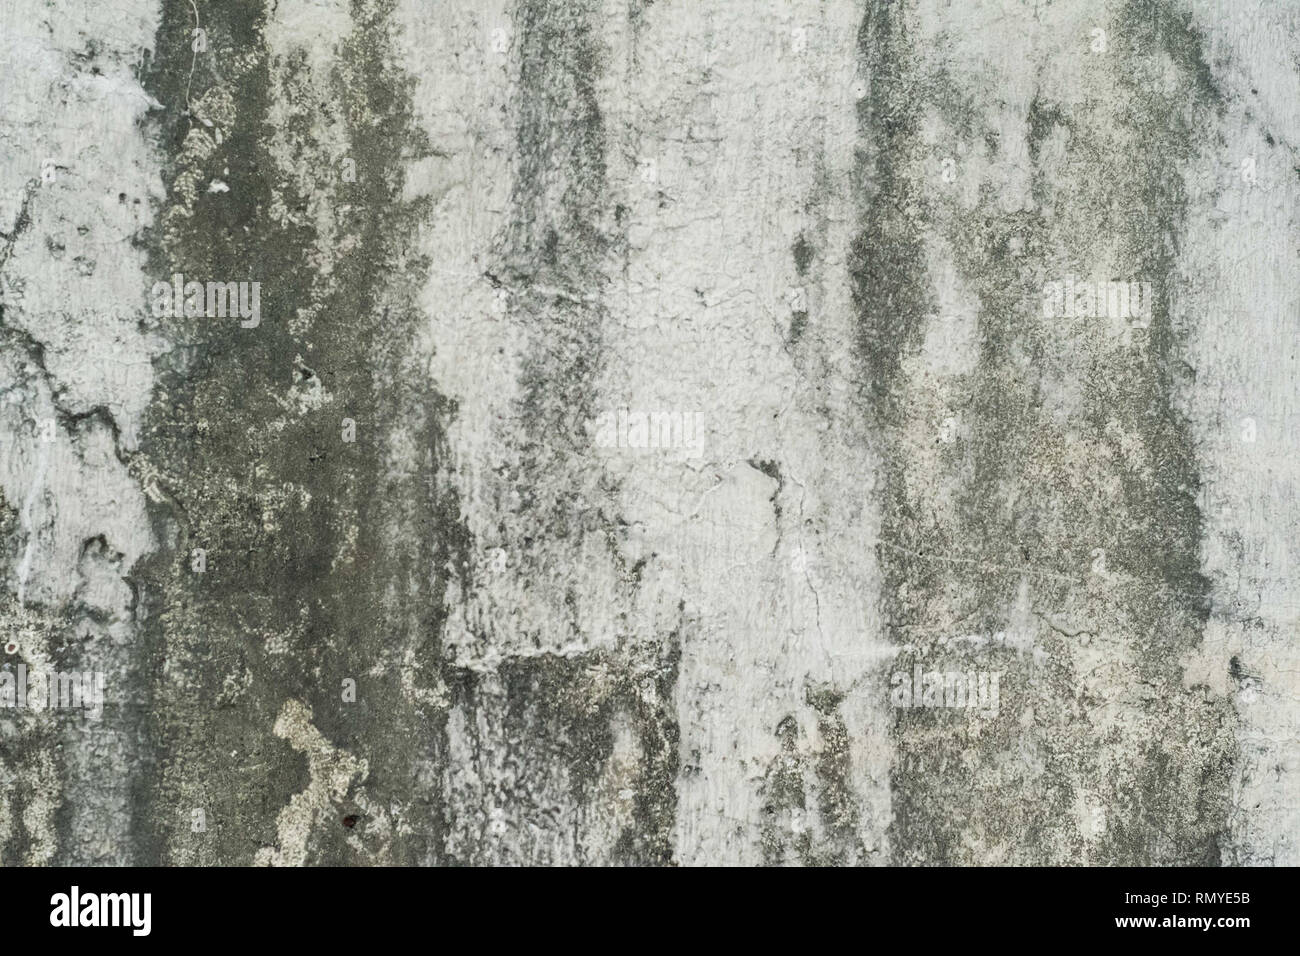 Old paint on a diry wall - Stock Image